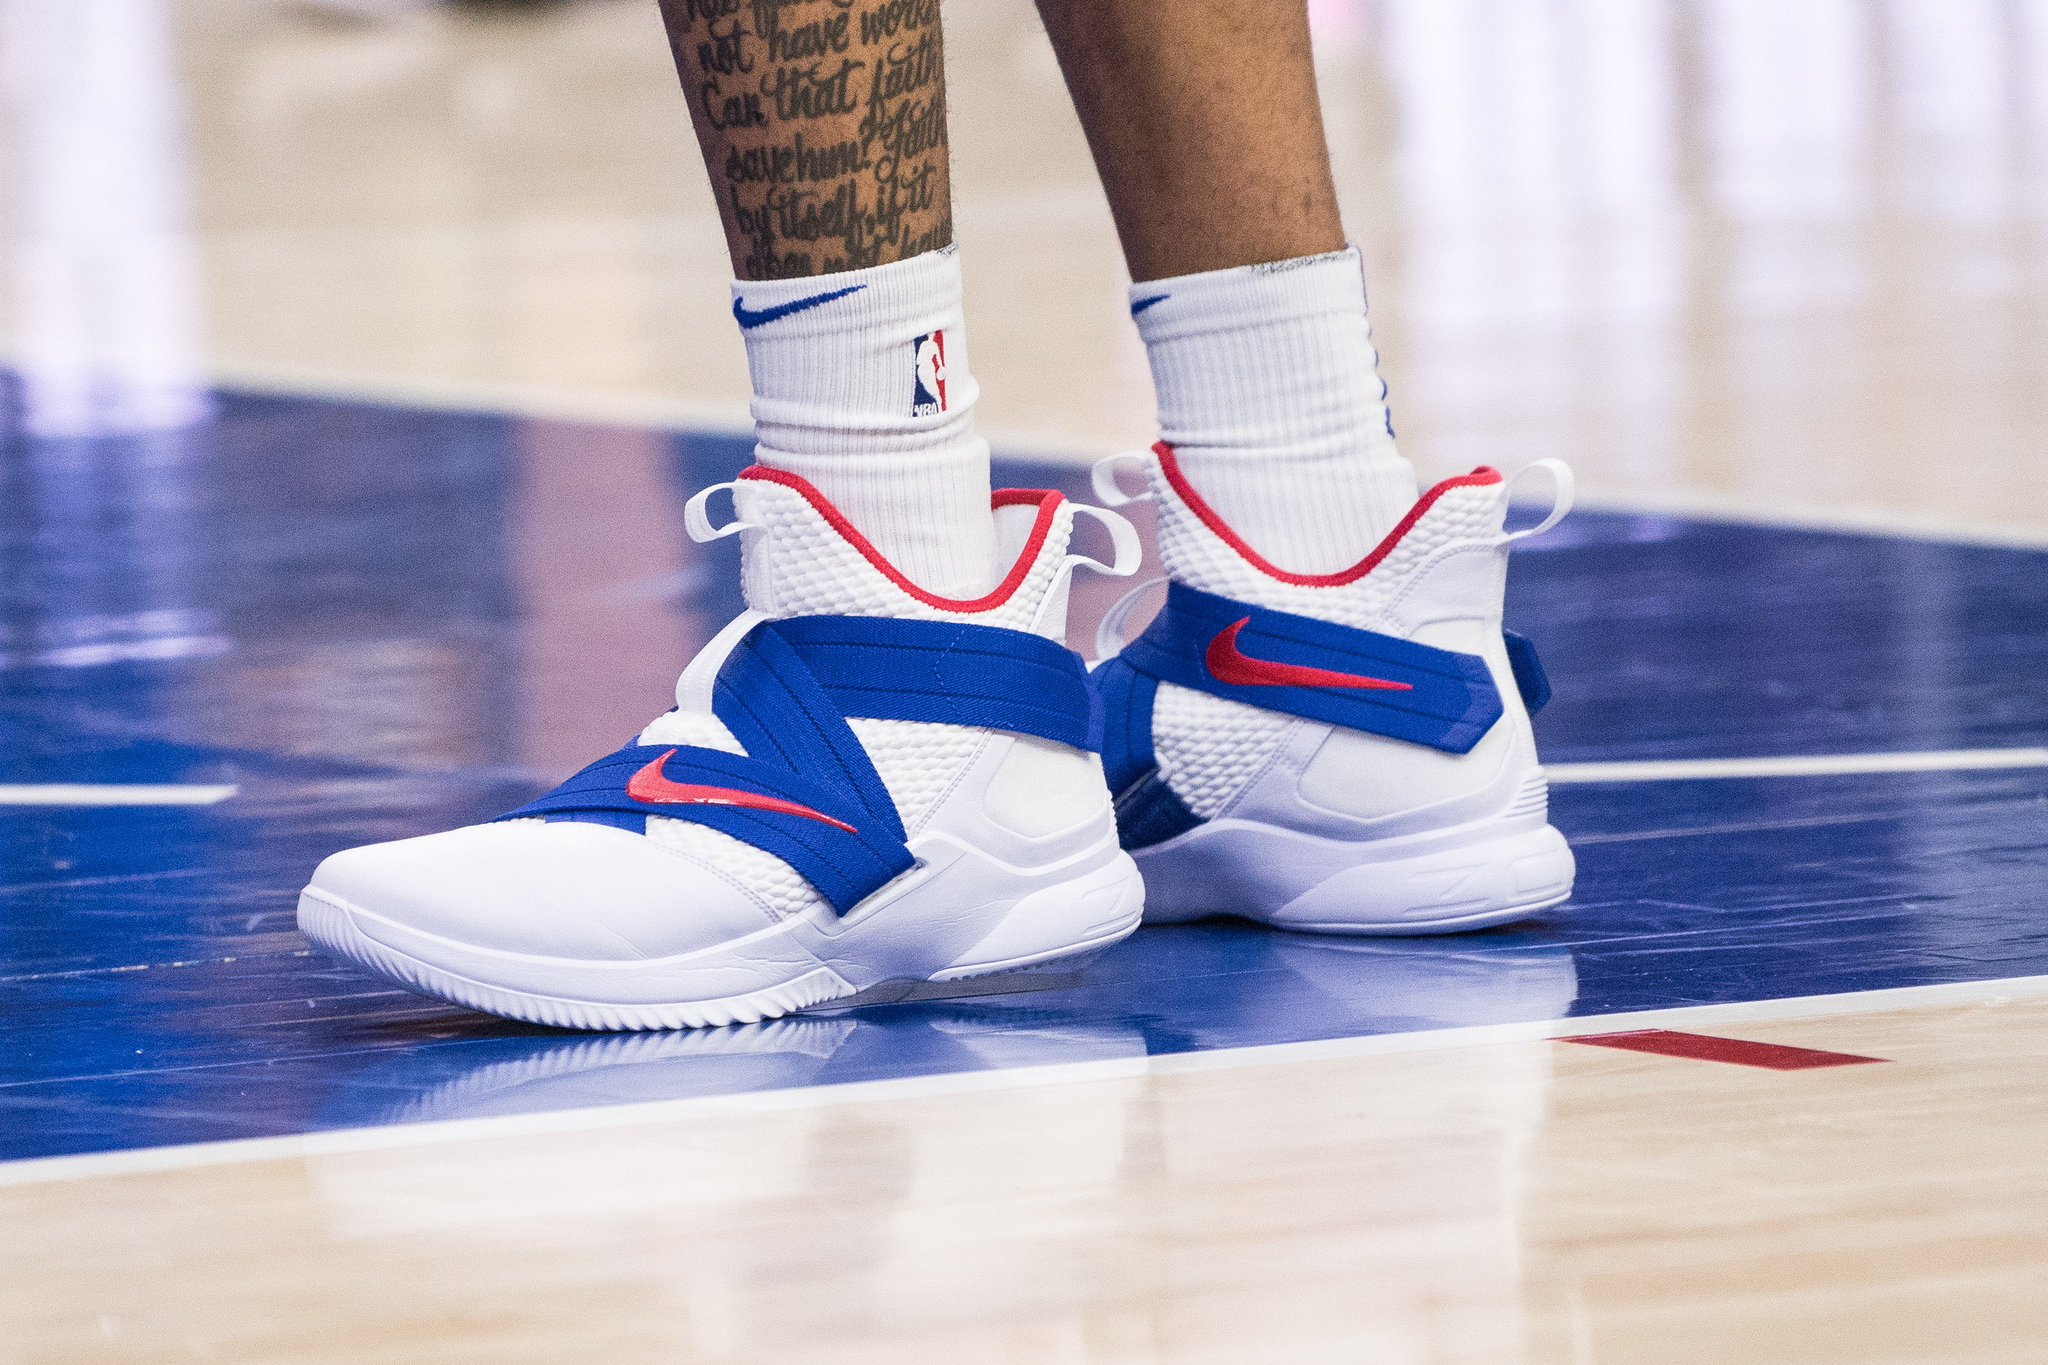 .@MarkelleF with the festive colorway.   ���� x #NBAKicks https://t.co/QaD16WNzLa